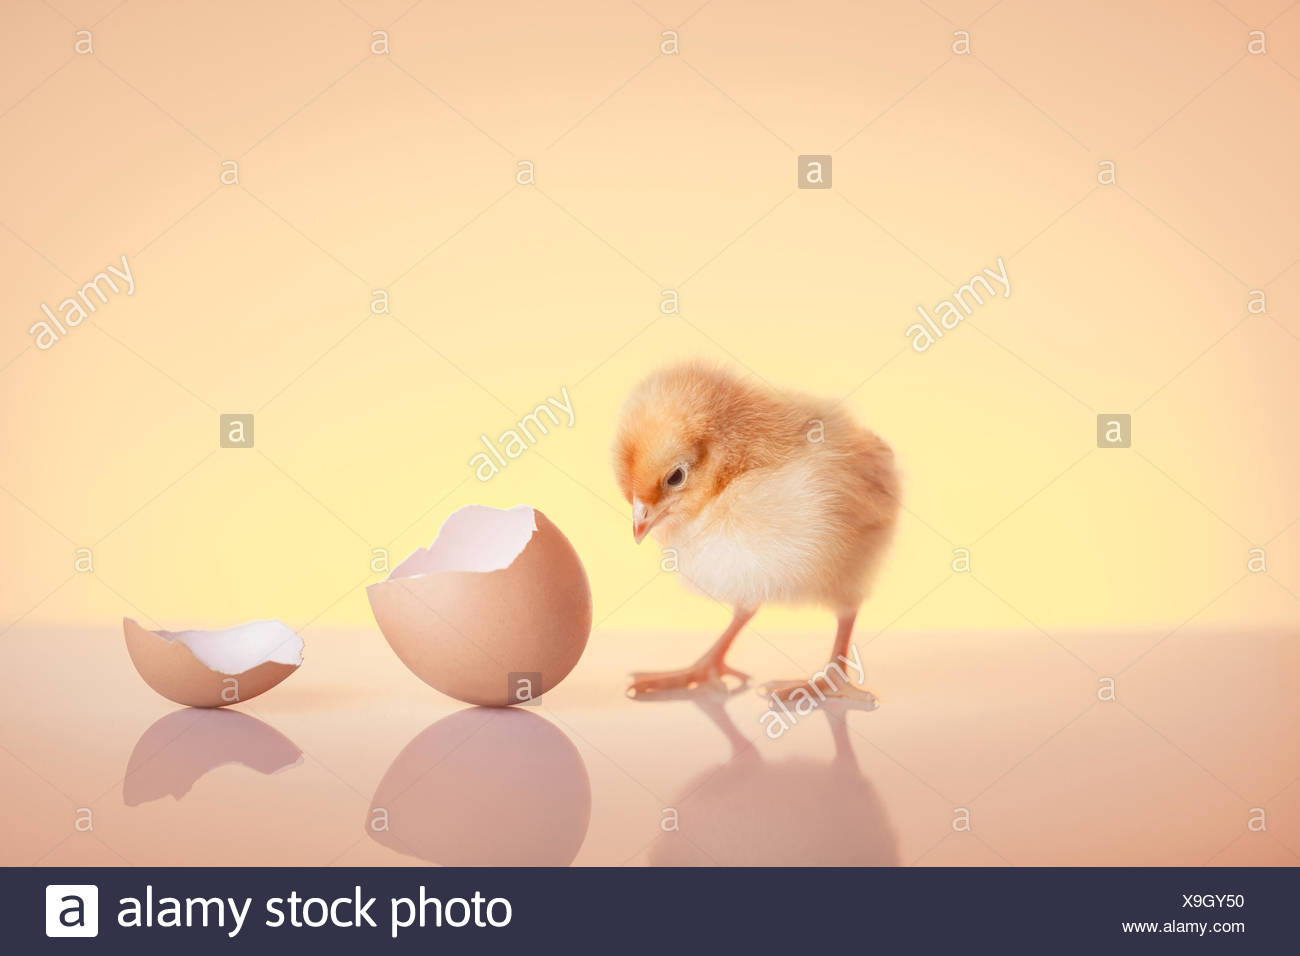 Recently hatched chick staring at an eggshell - Stock Image